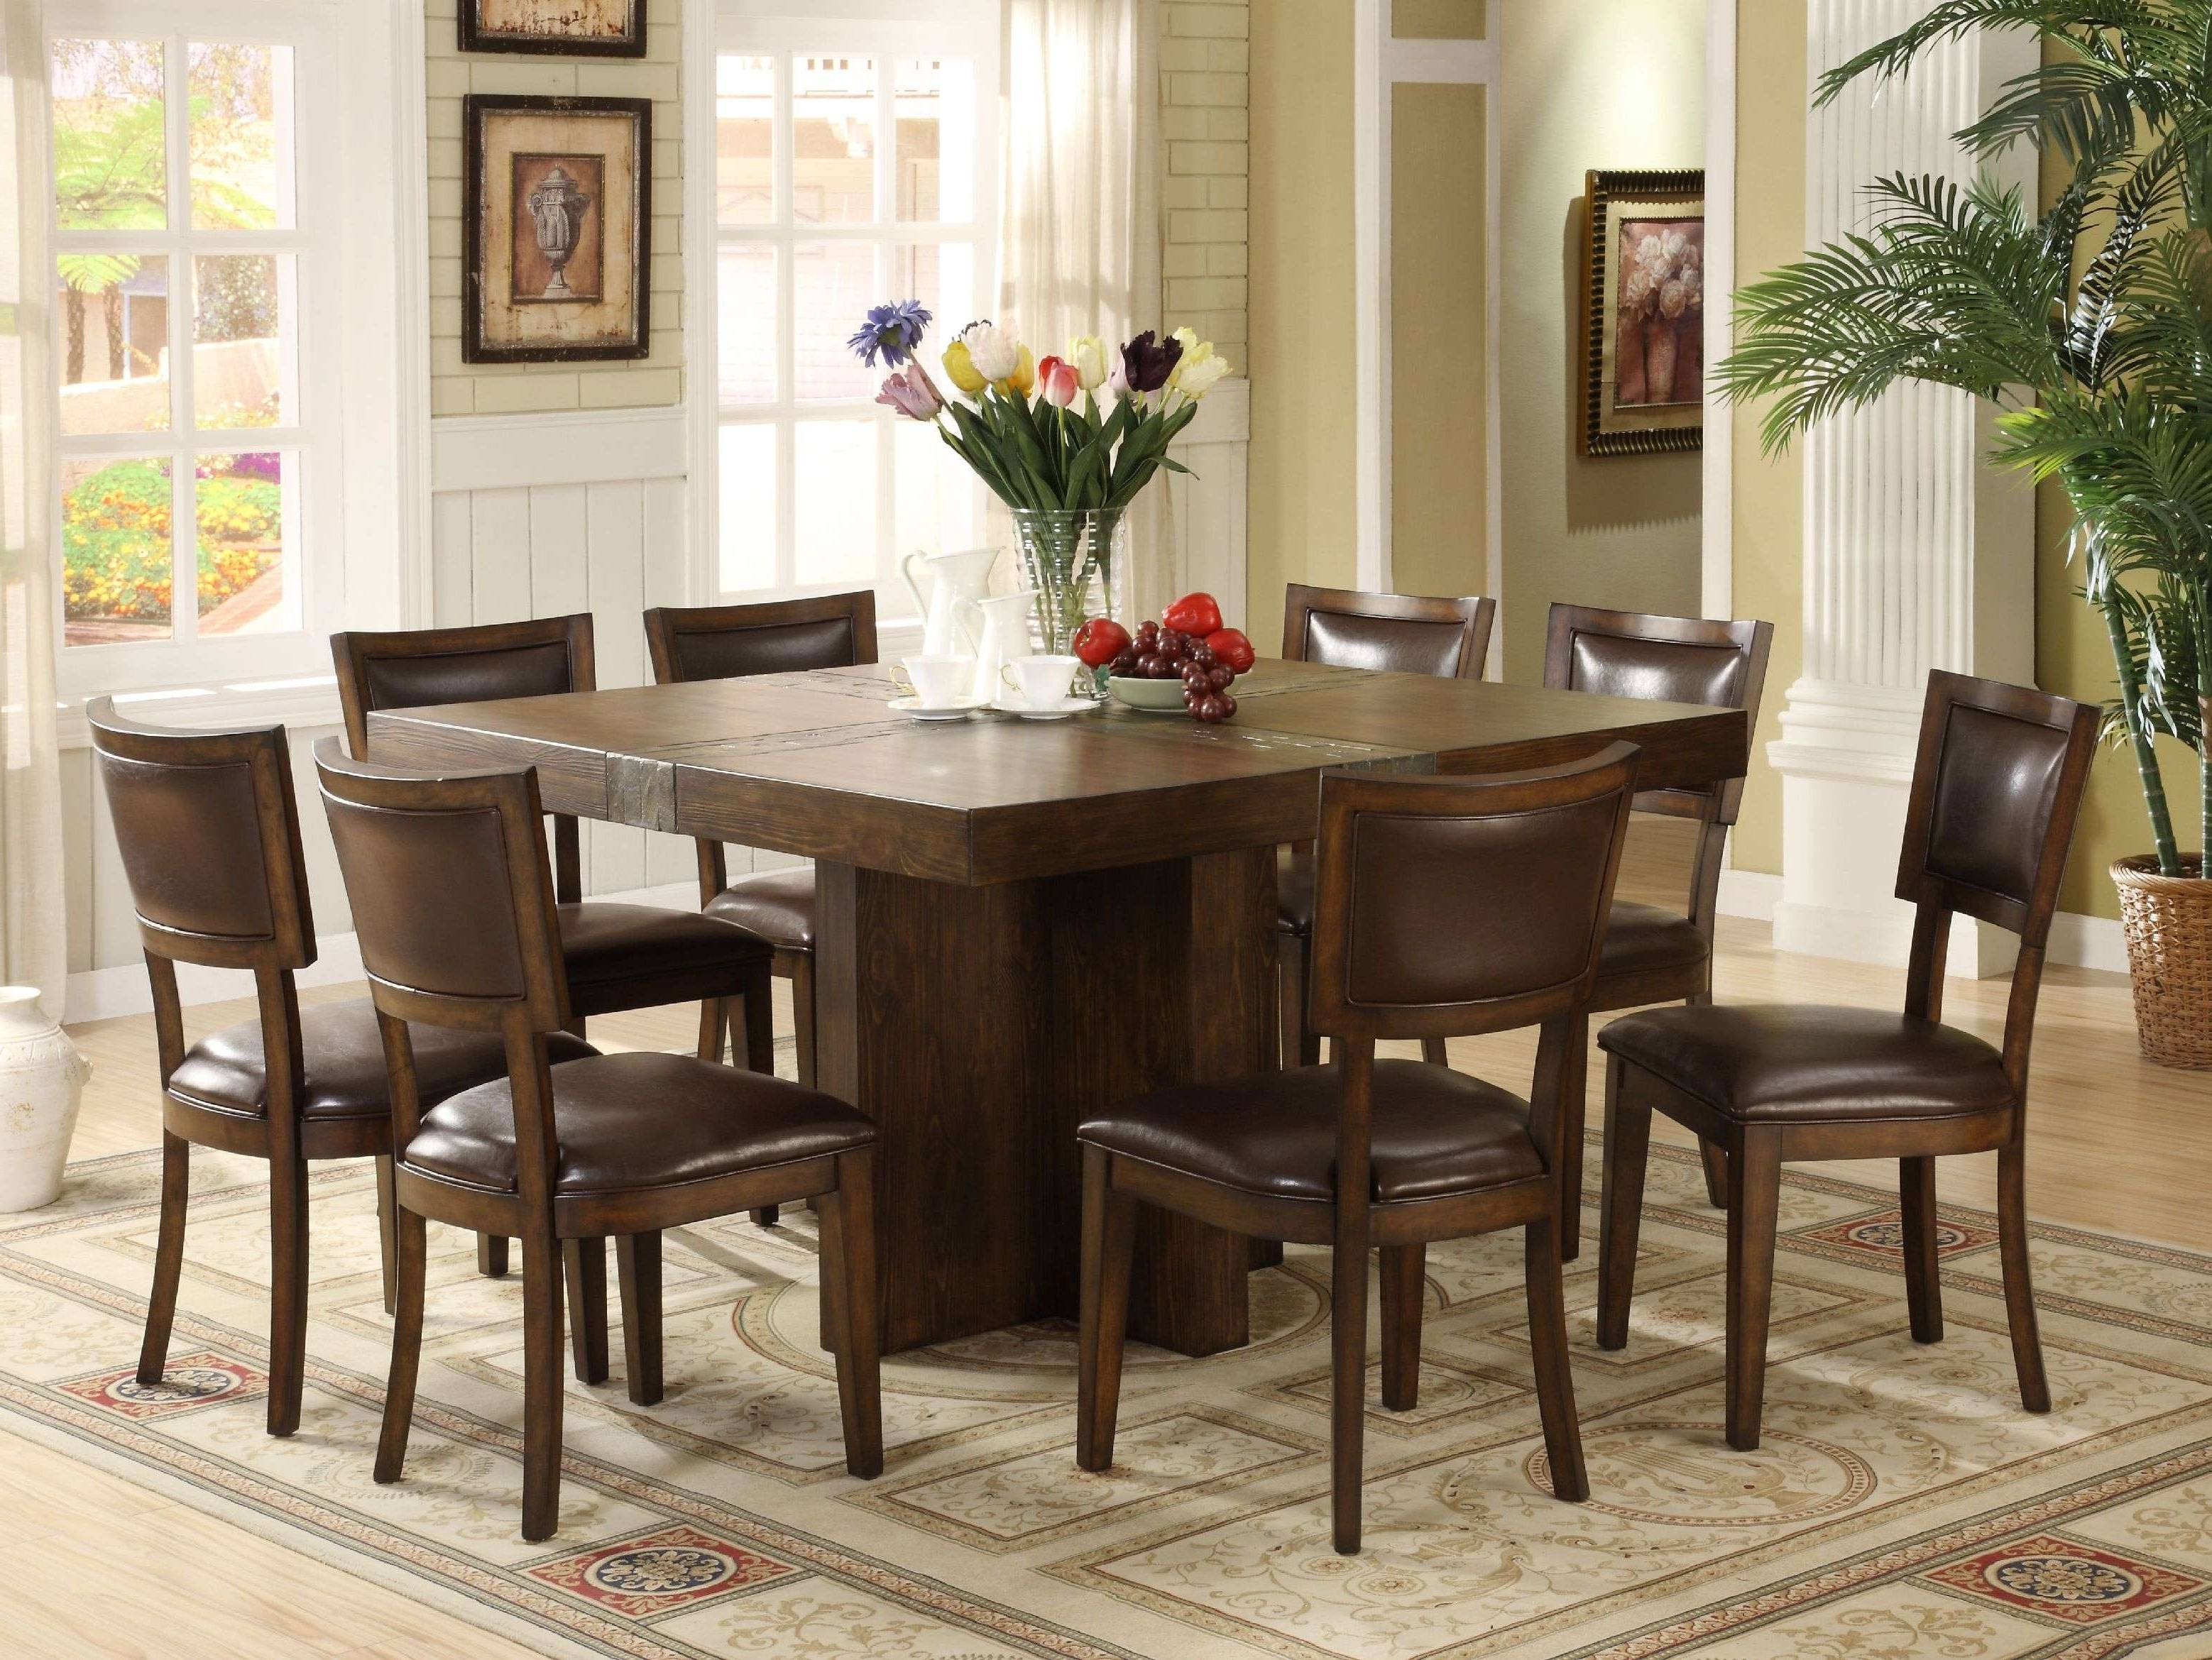 Dining Tables With 8 Chairs Regarding Well Known Solid Oak Dining Room Table And 8 Chairs New Ashley Counter Height (View 20 of 25)